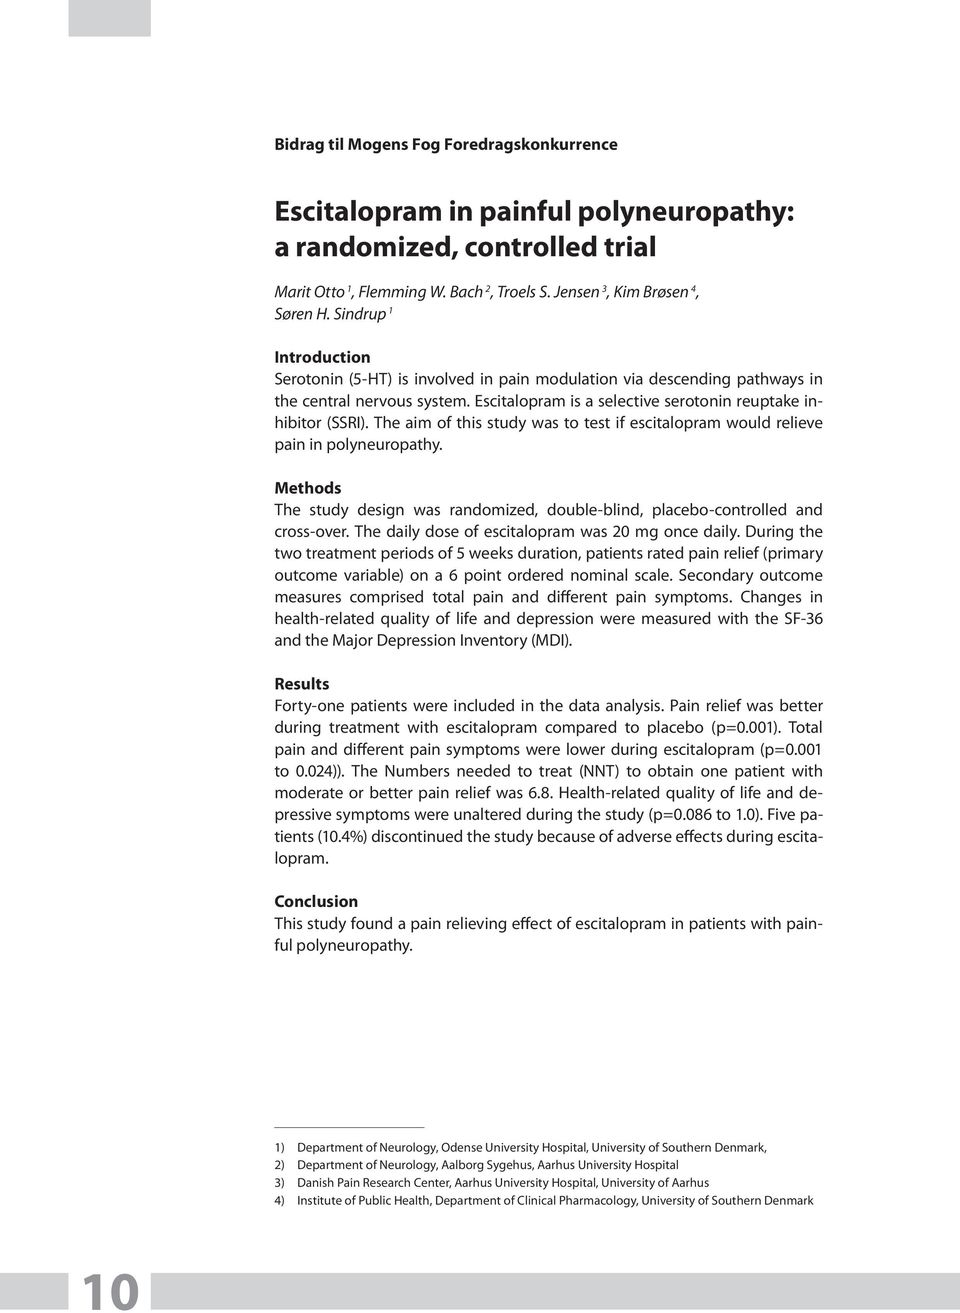 The aim of this study was to test if escitalopram would relieve pain in polyneuropathy. Methods The study design was randomized, double-blind, placebo-controlled and cross-over.